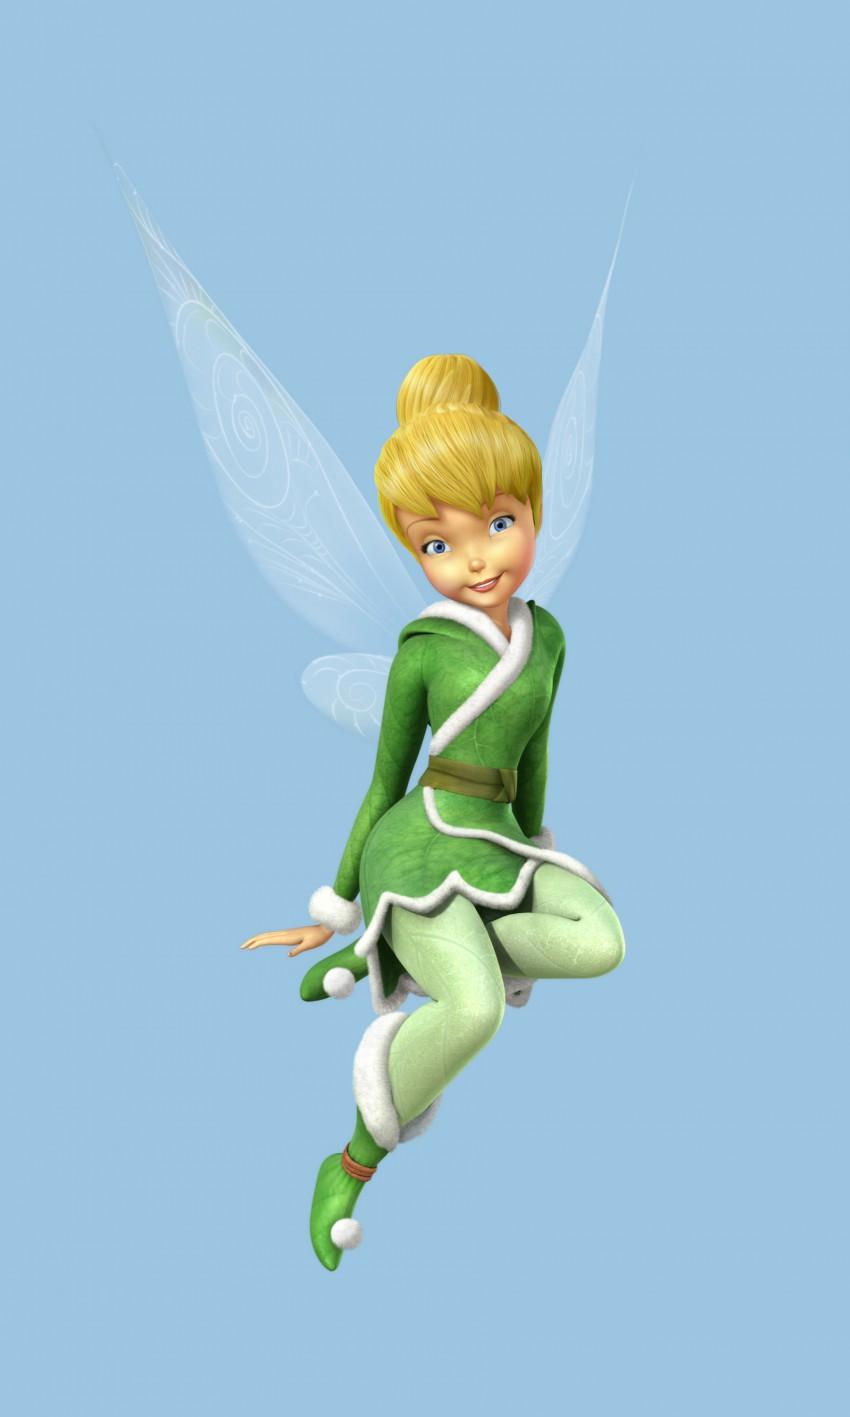 Tinkerbell costume sex pics adult streaming